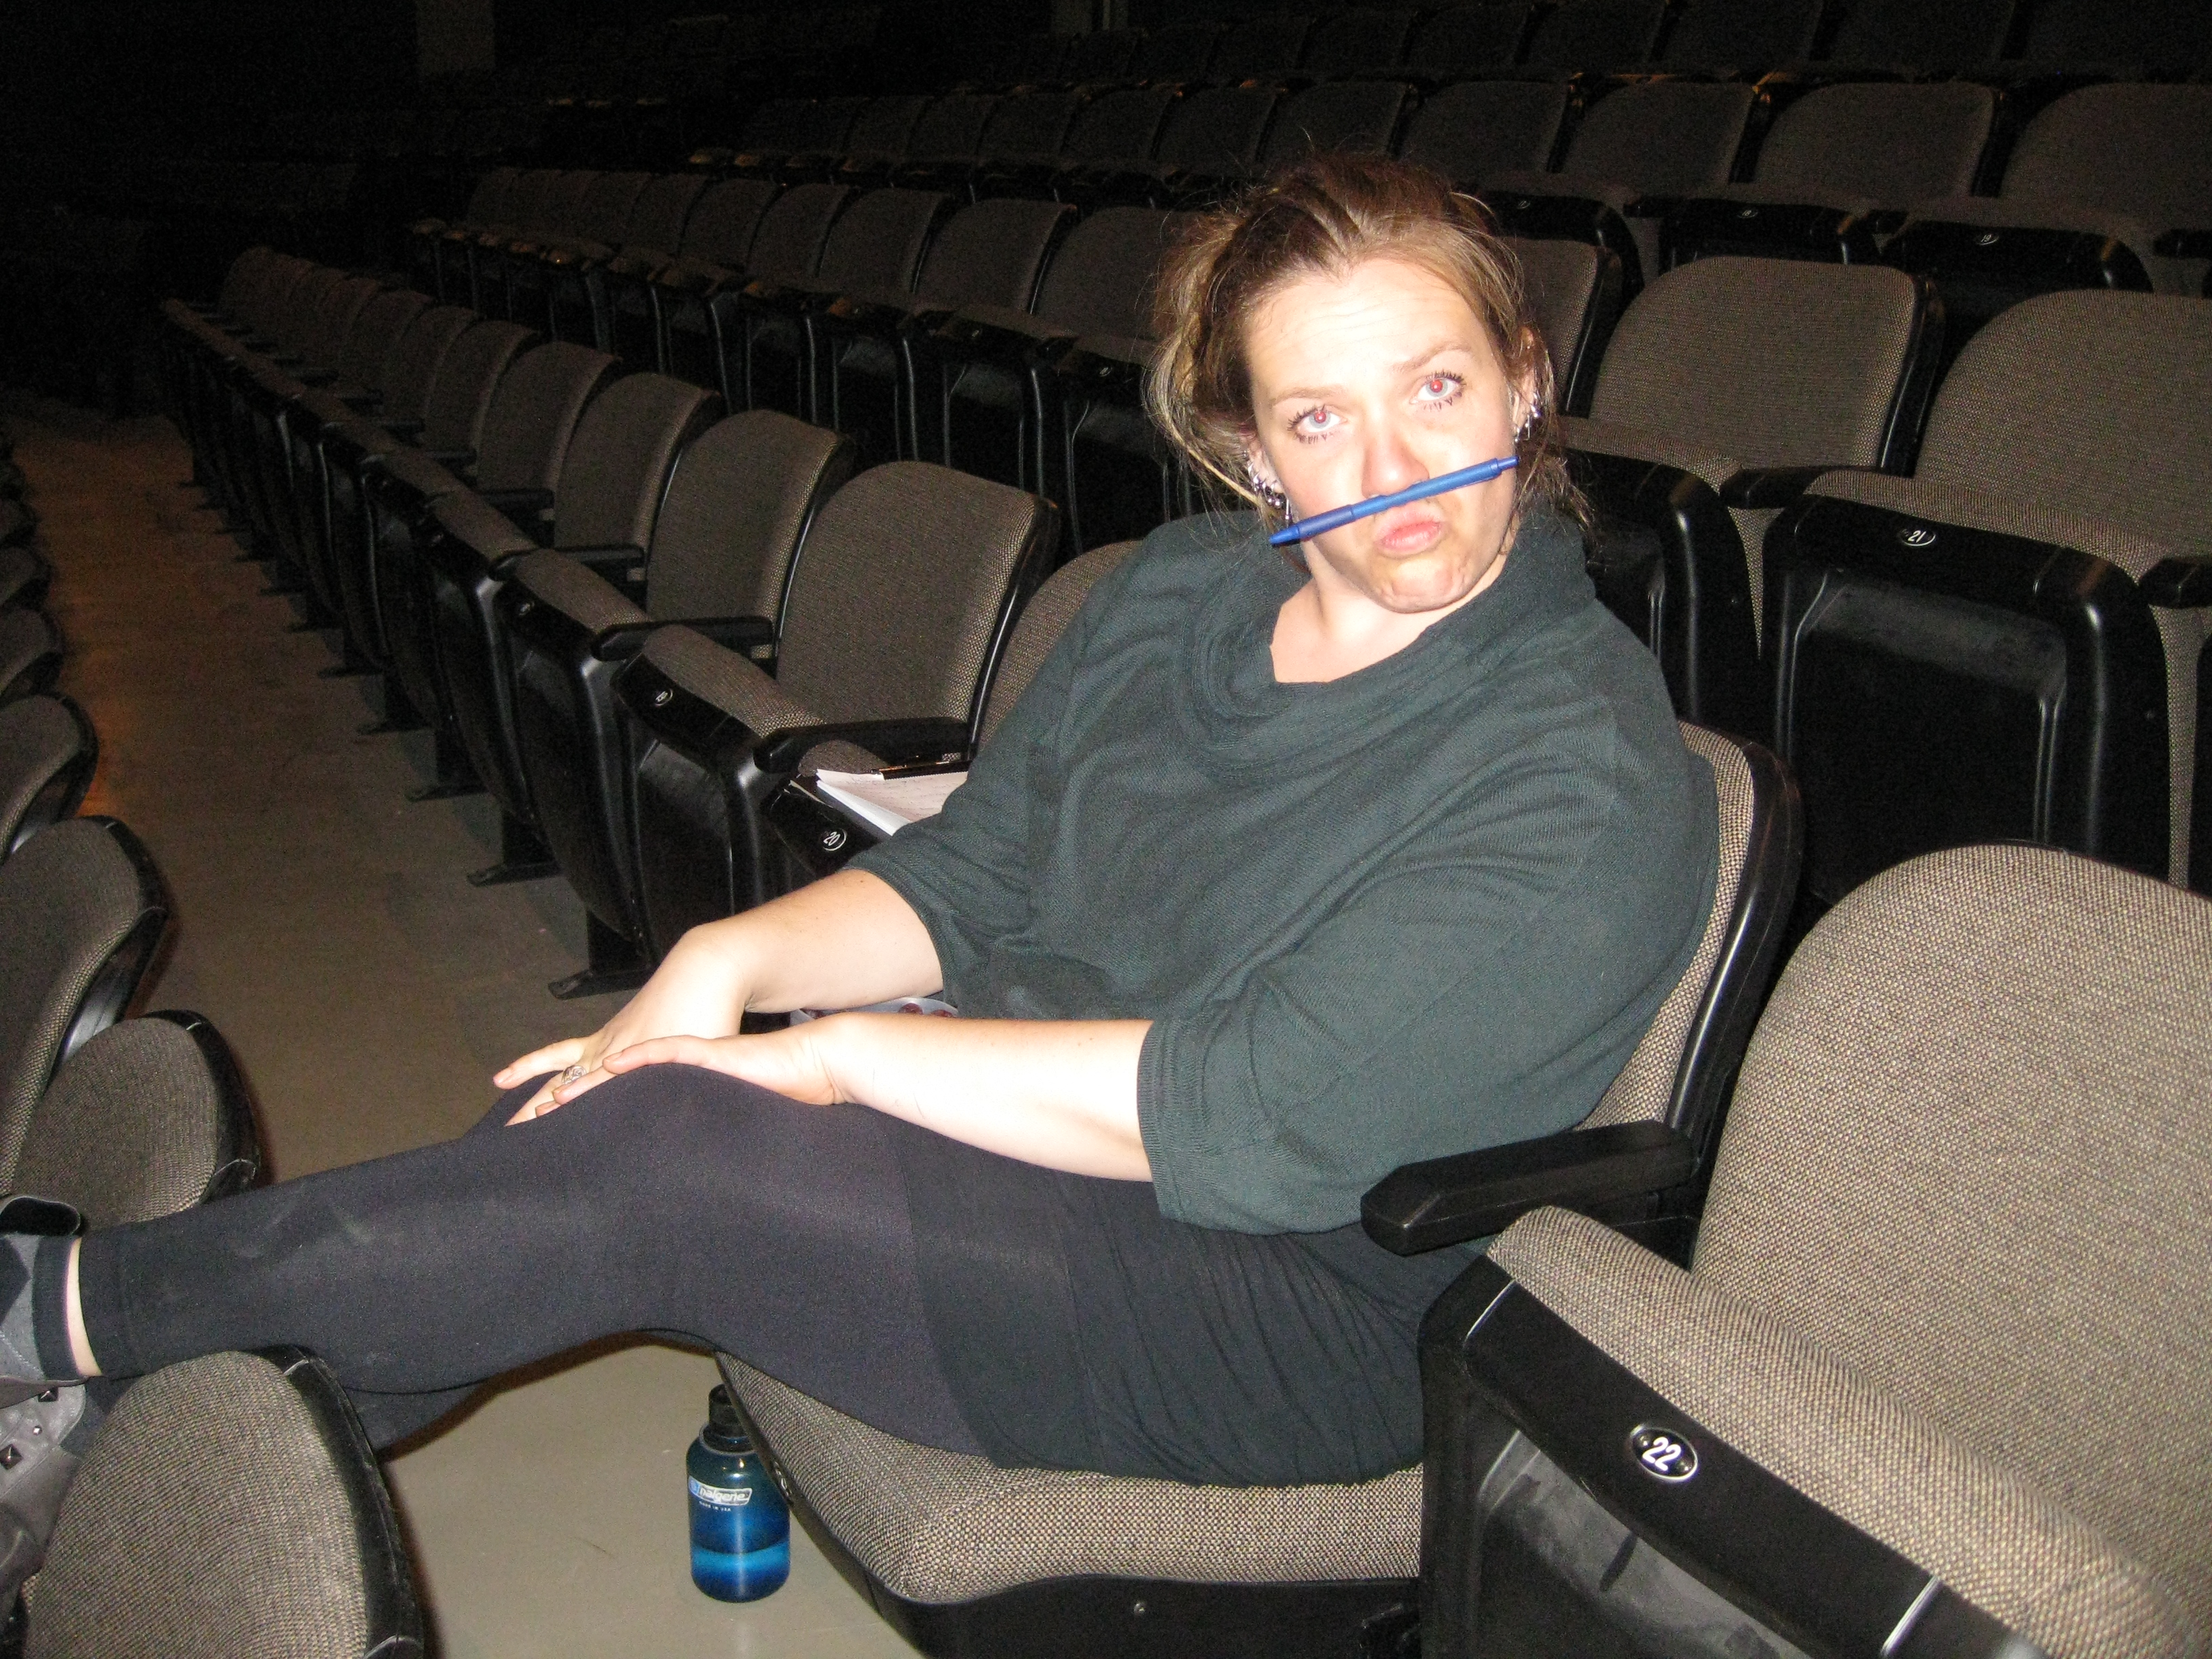 JENNIFER QUINN / Director (doing Movember early this year).